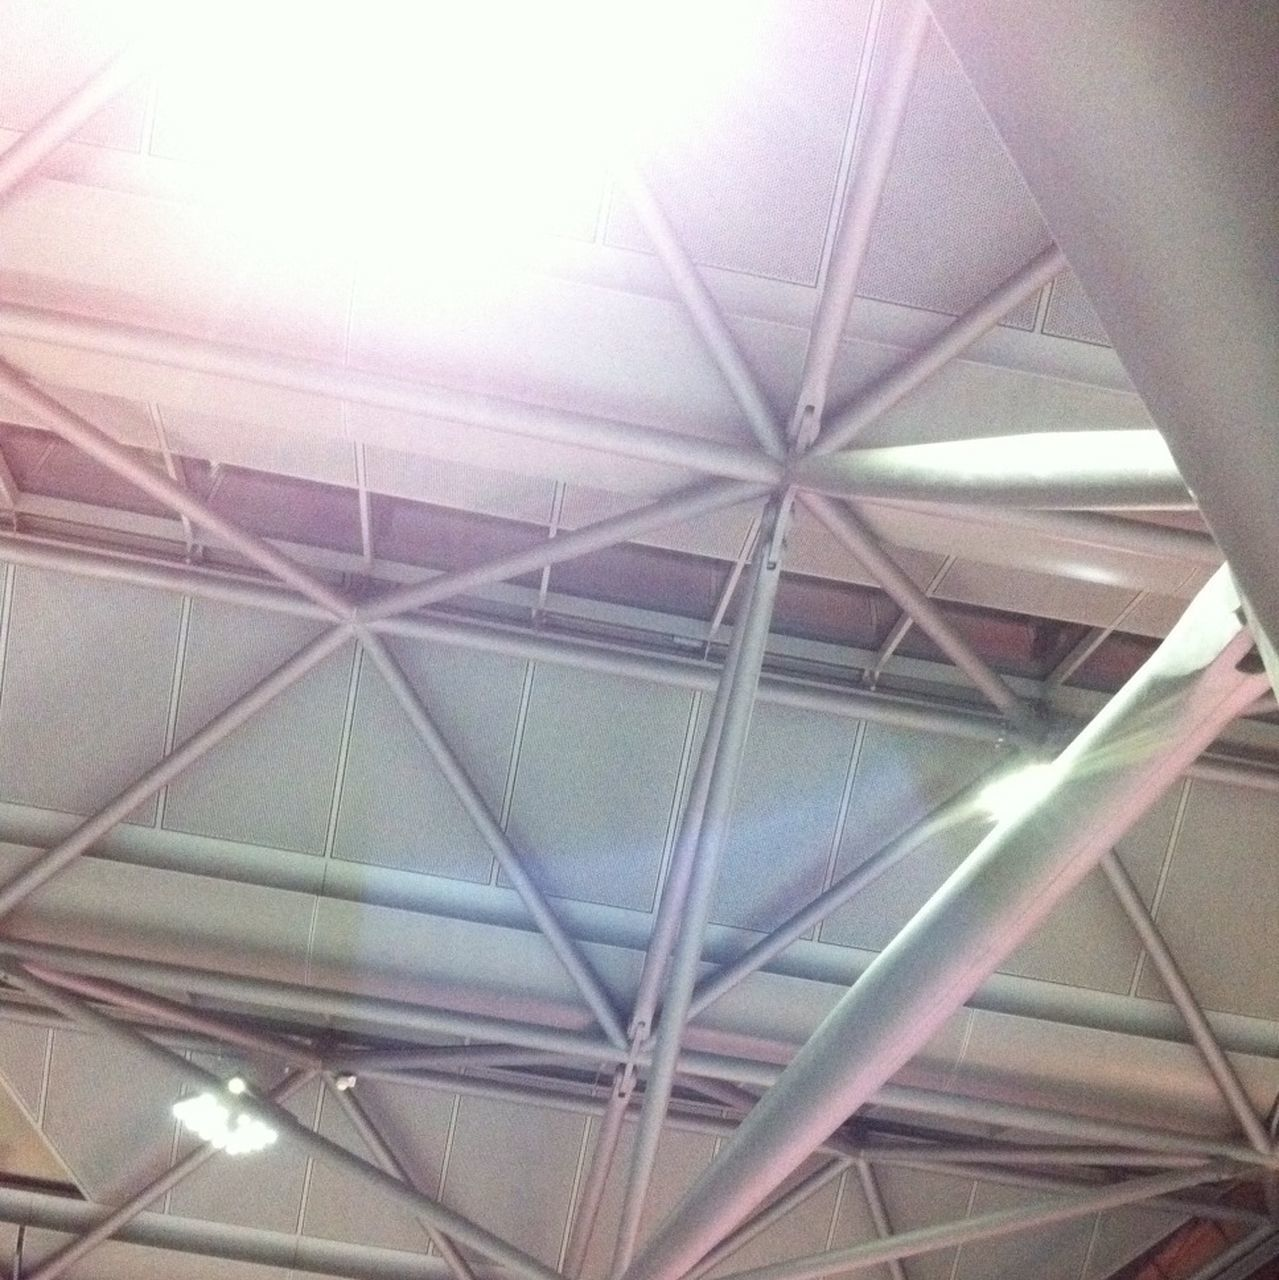 indoors, ceiling, low angle view, illuminated, built structure, architecture, no people, day, close-up